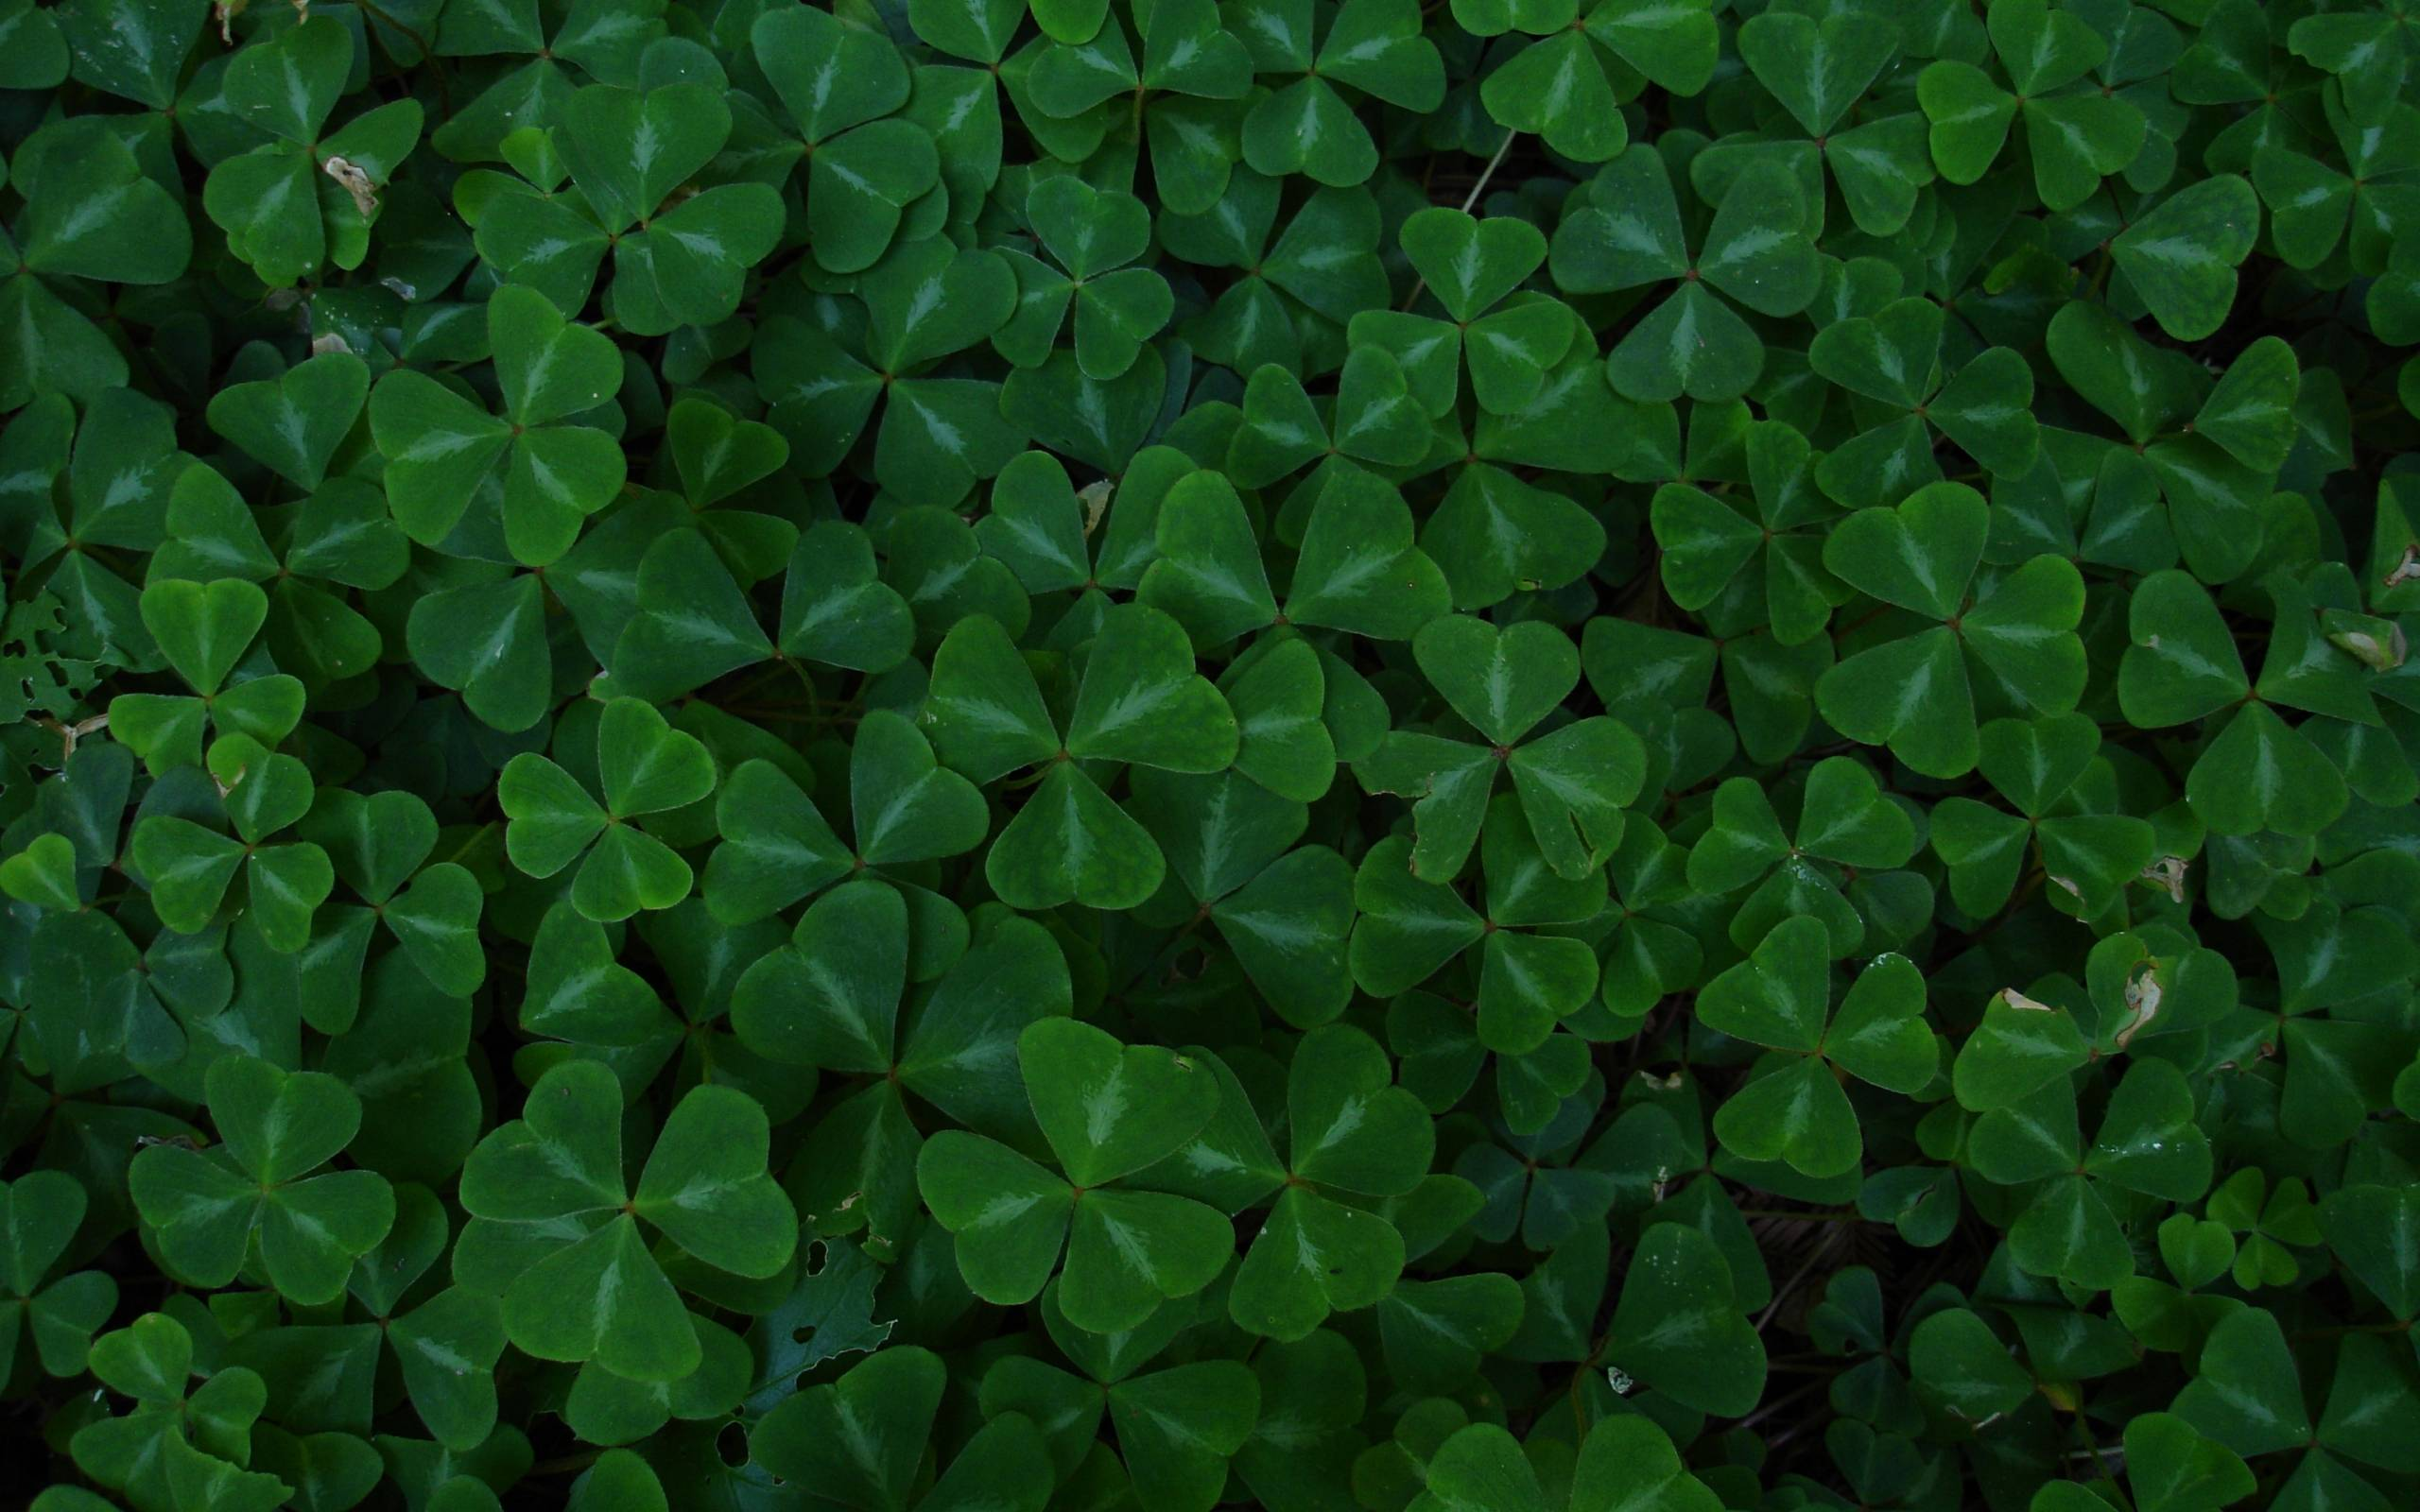 Four Leaf Clover Wallpapers 2560x1600